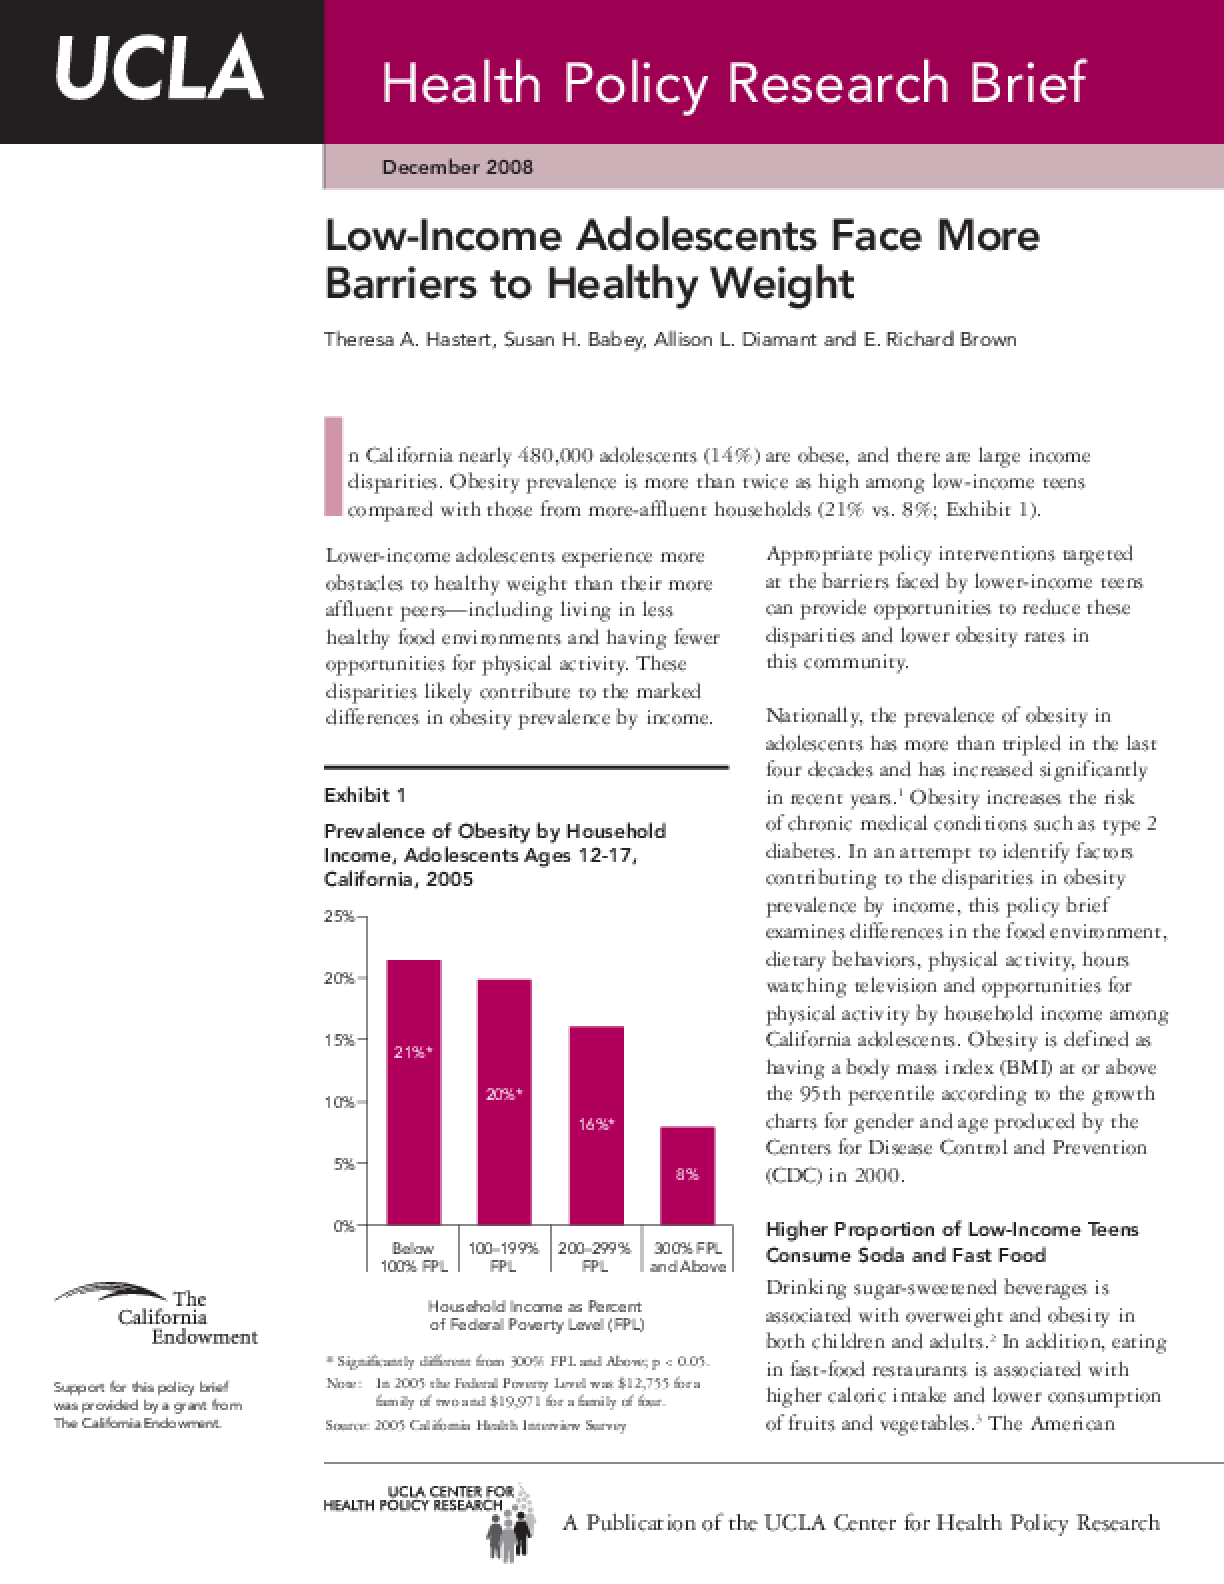 Low-Income Adolescents Face More Barriers to Healthy Weight